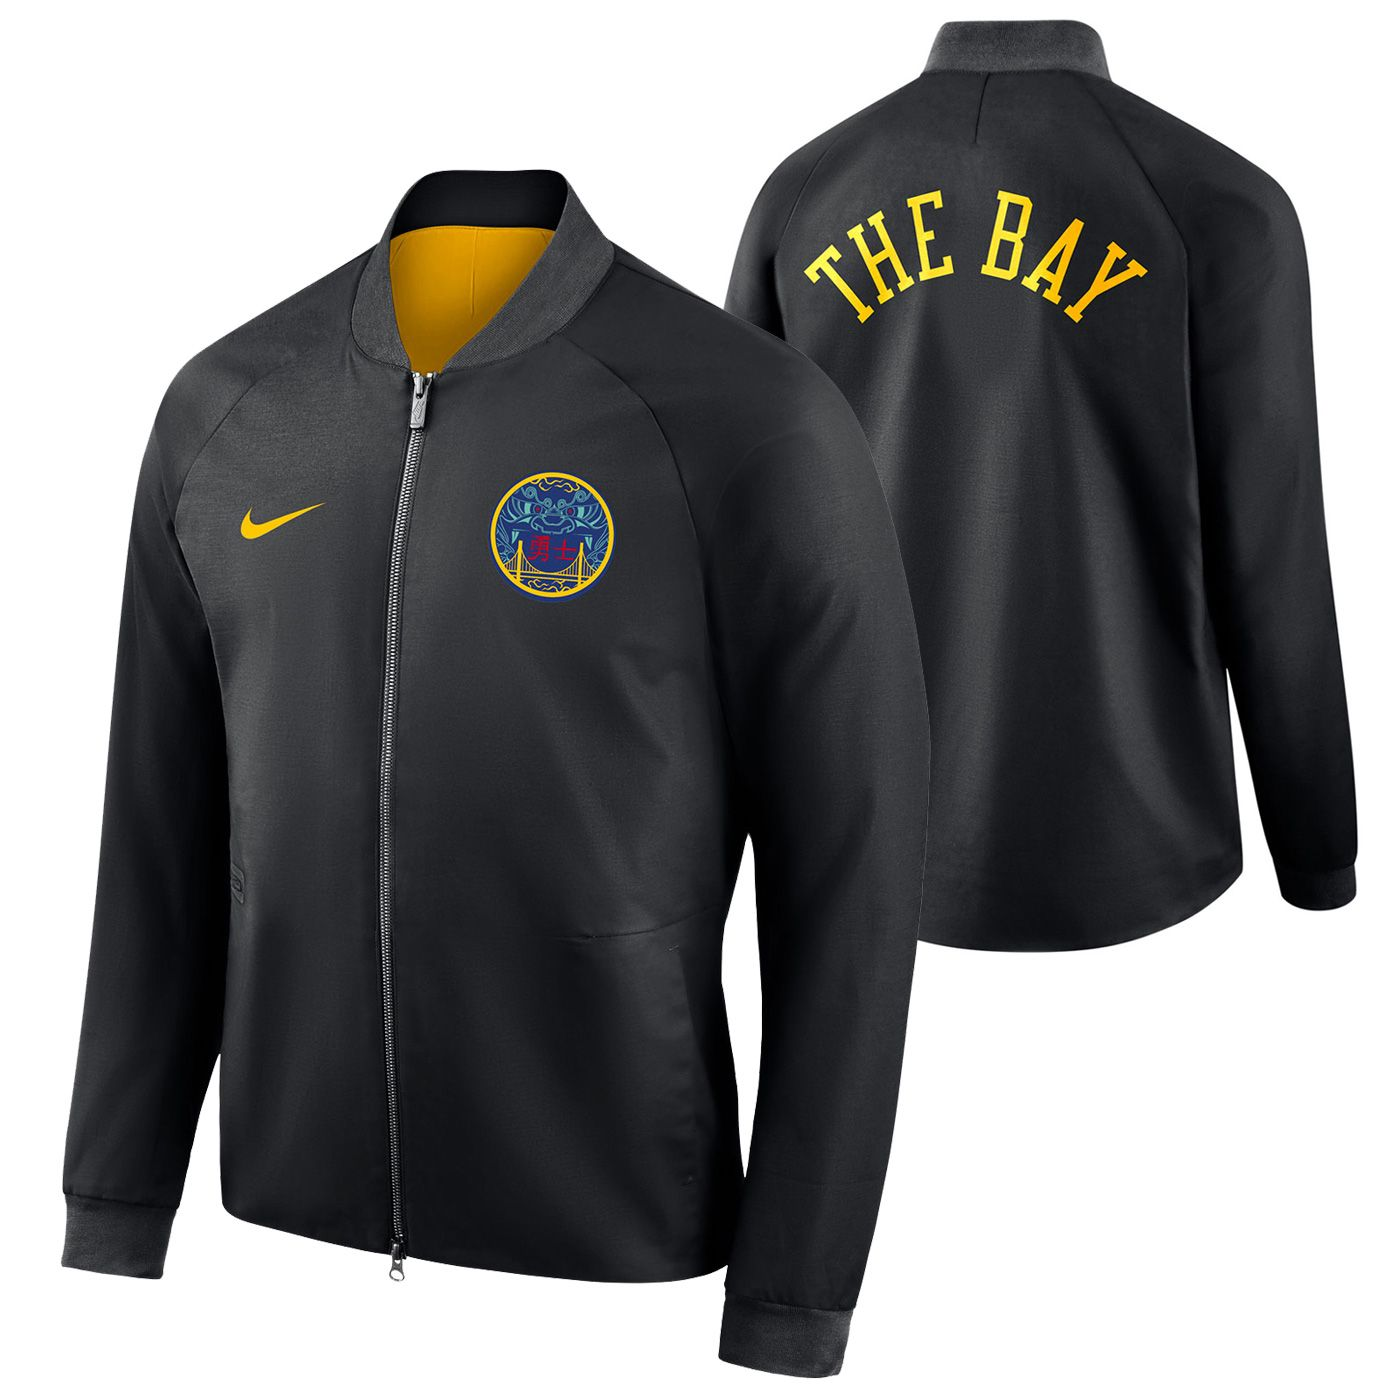 a03cb8575 Golden State Warriors Nike Men's Chinese Heritage 'The Bay' City Edition  Modern Varsity Jacket - Black